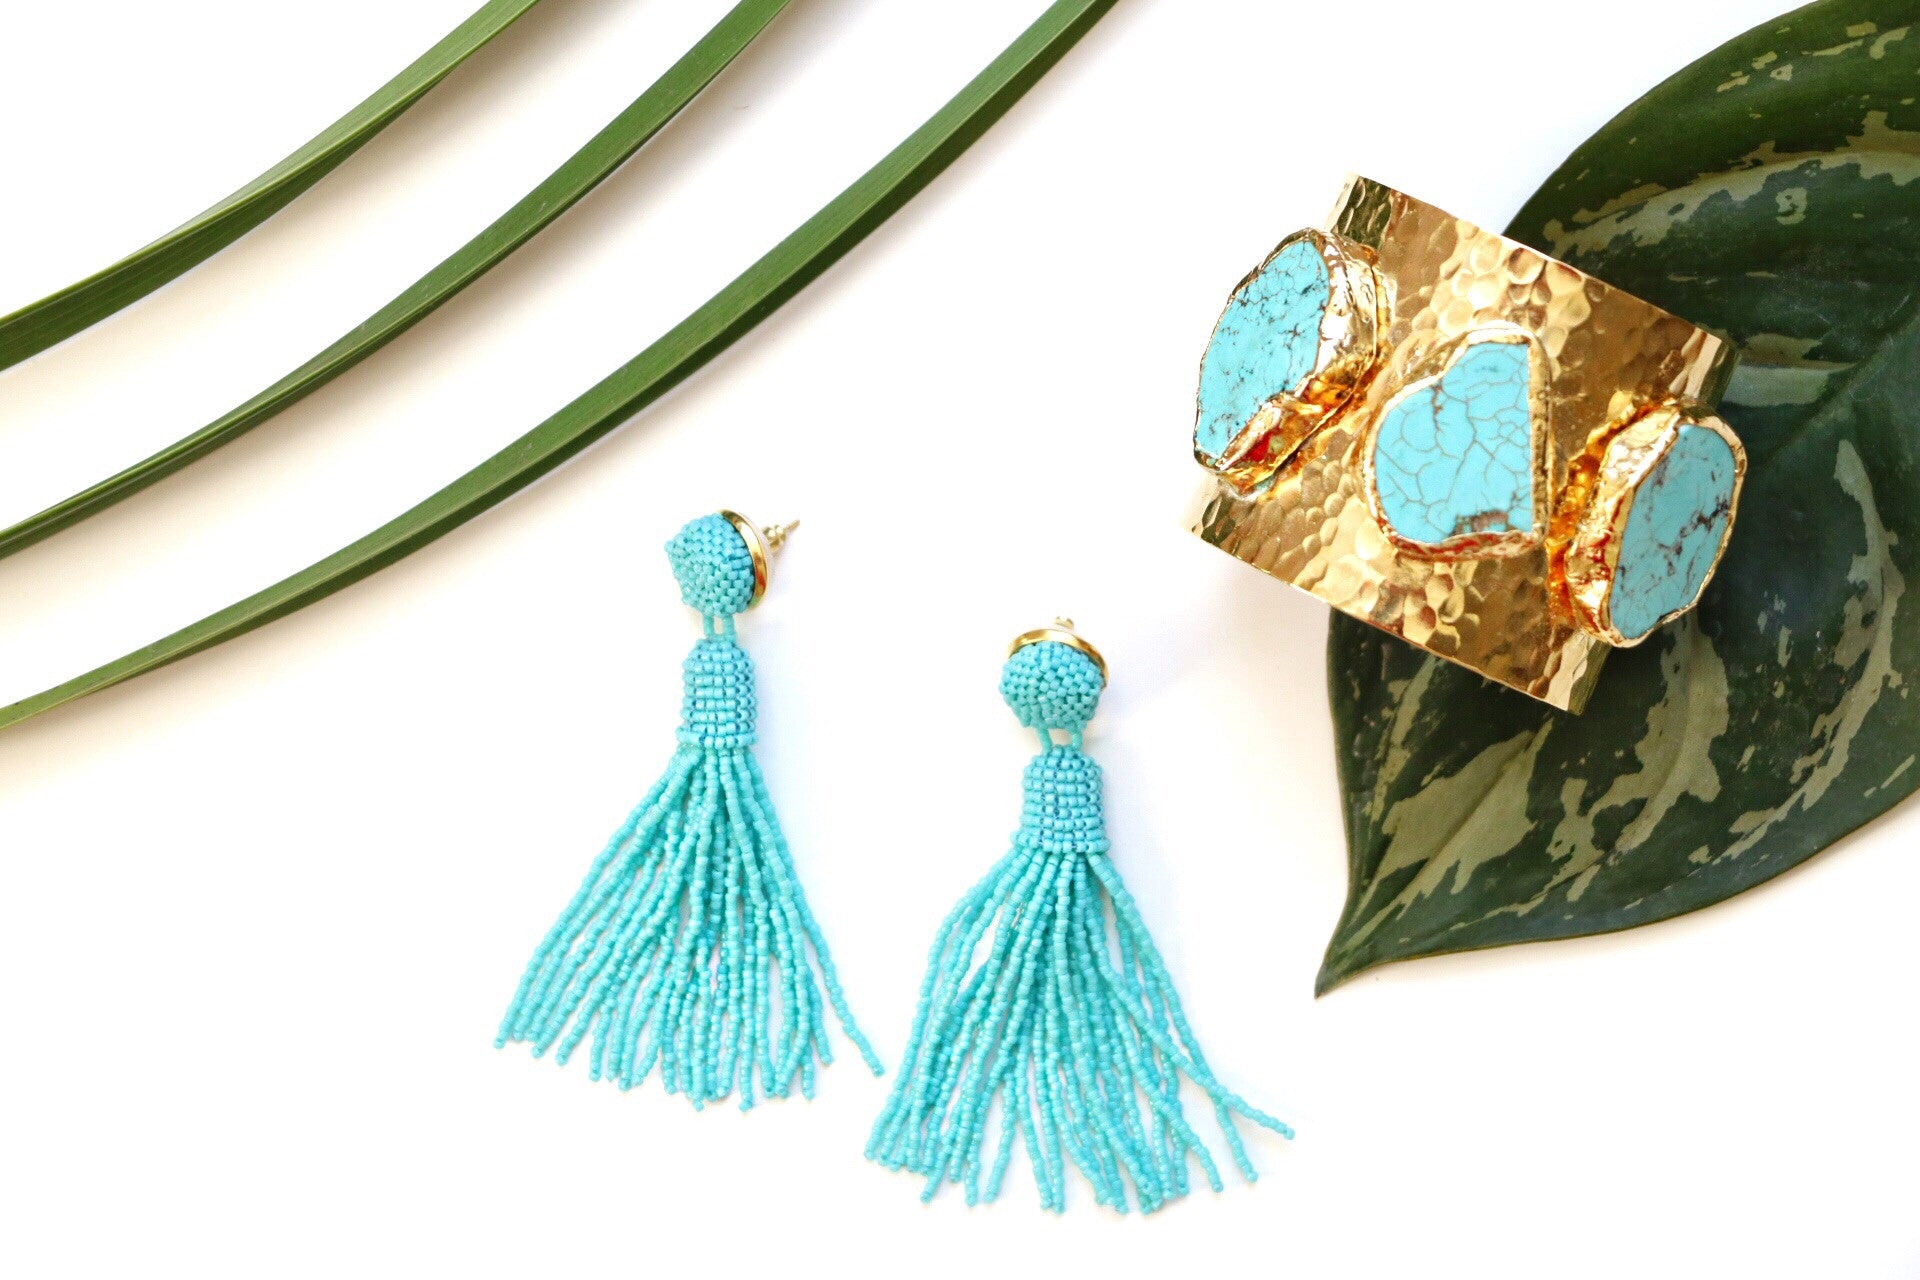 tassel earrings, turquoise tassel earrings, statement earrings to wear for summer, earrings to wear to a wedding, mothers day gift ideas